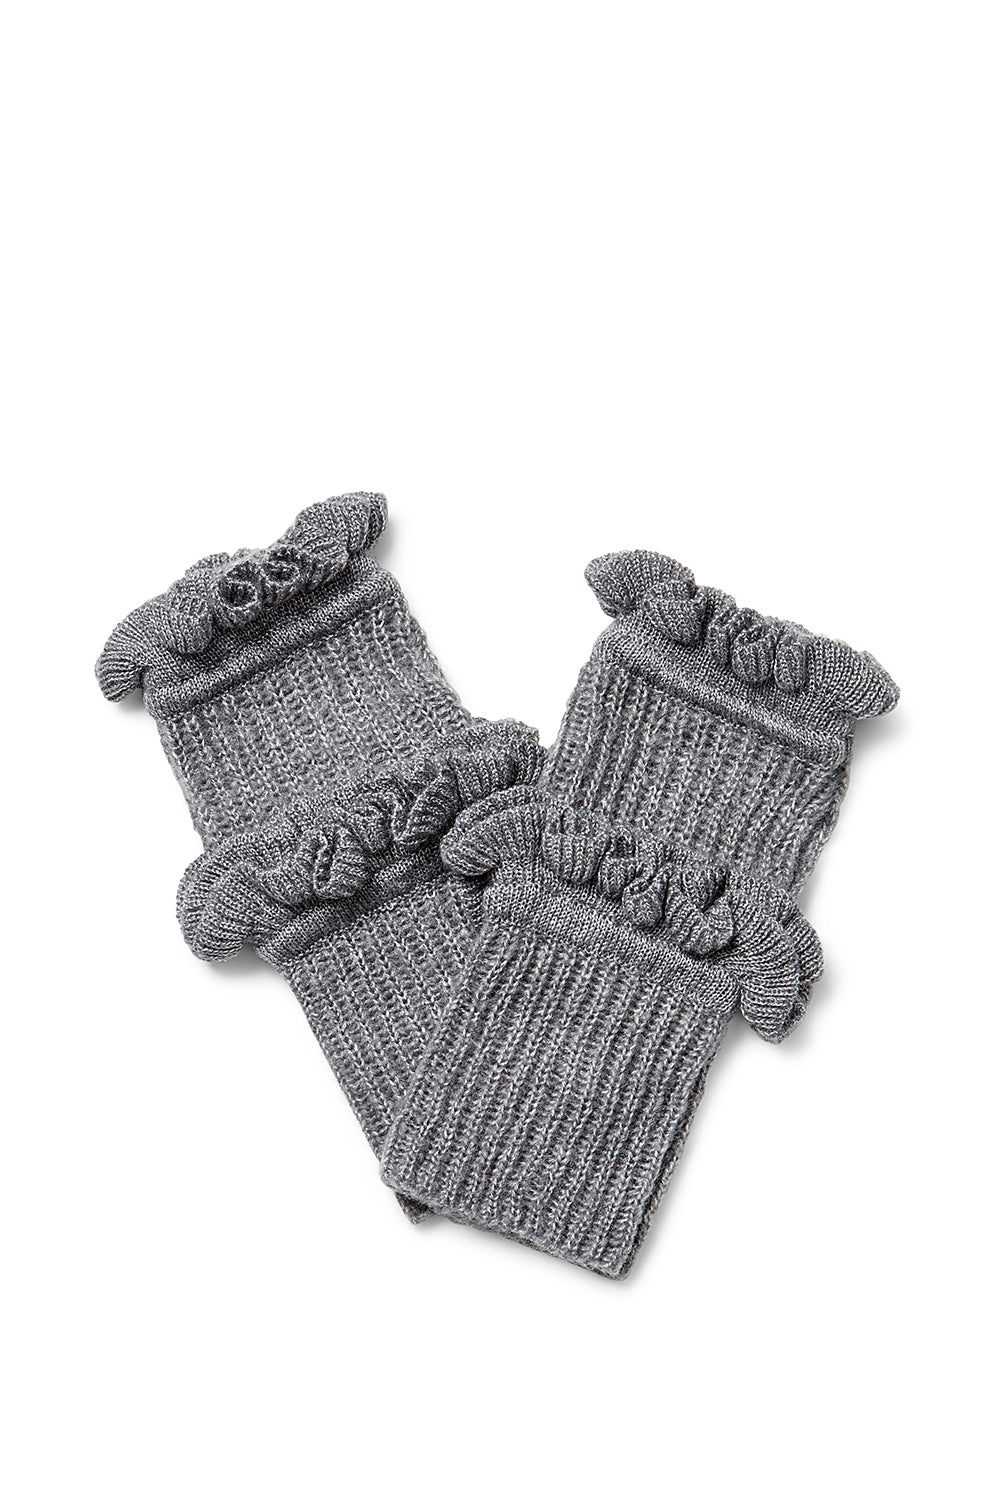 Ruffle Fingerless Gloves